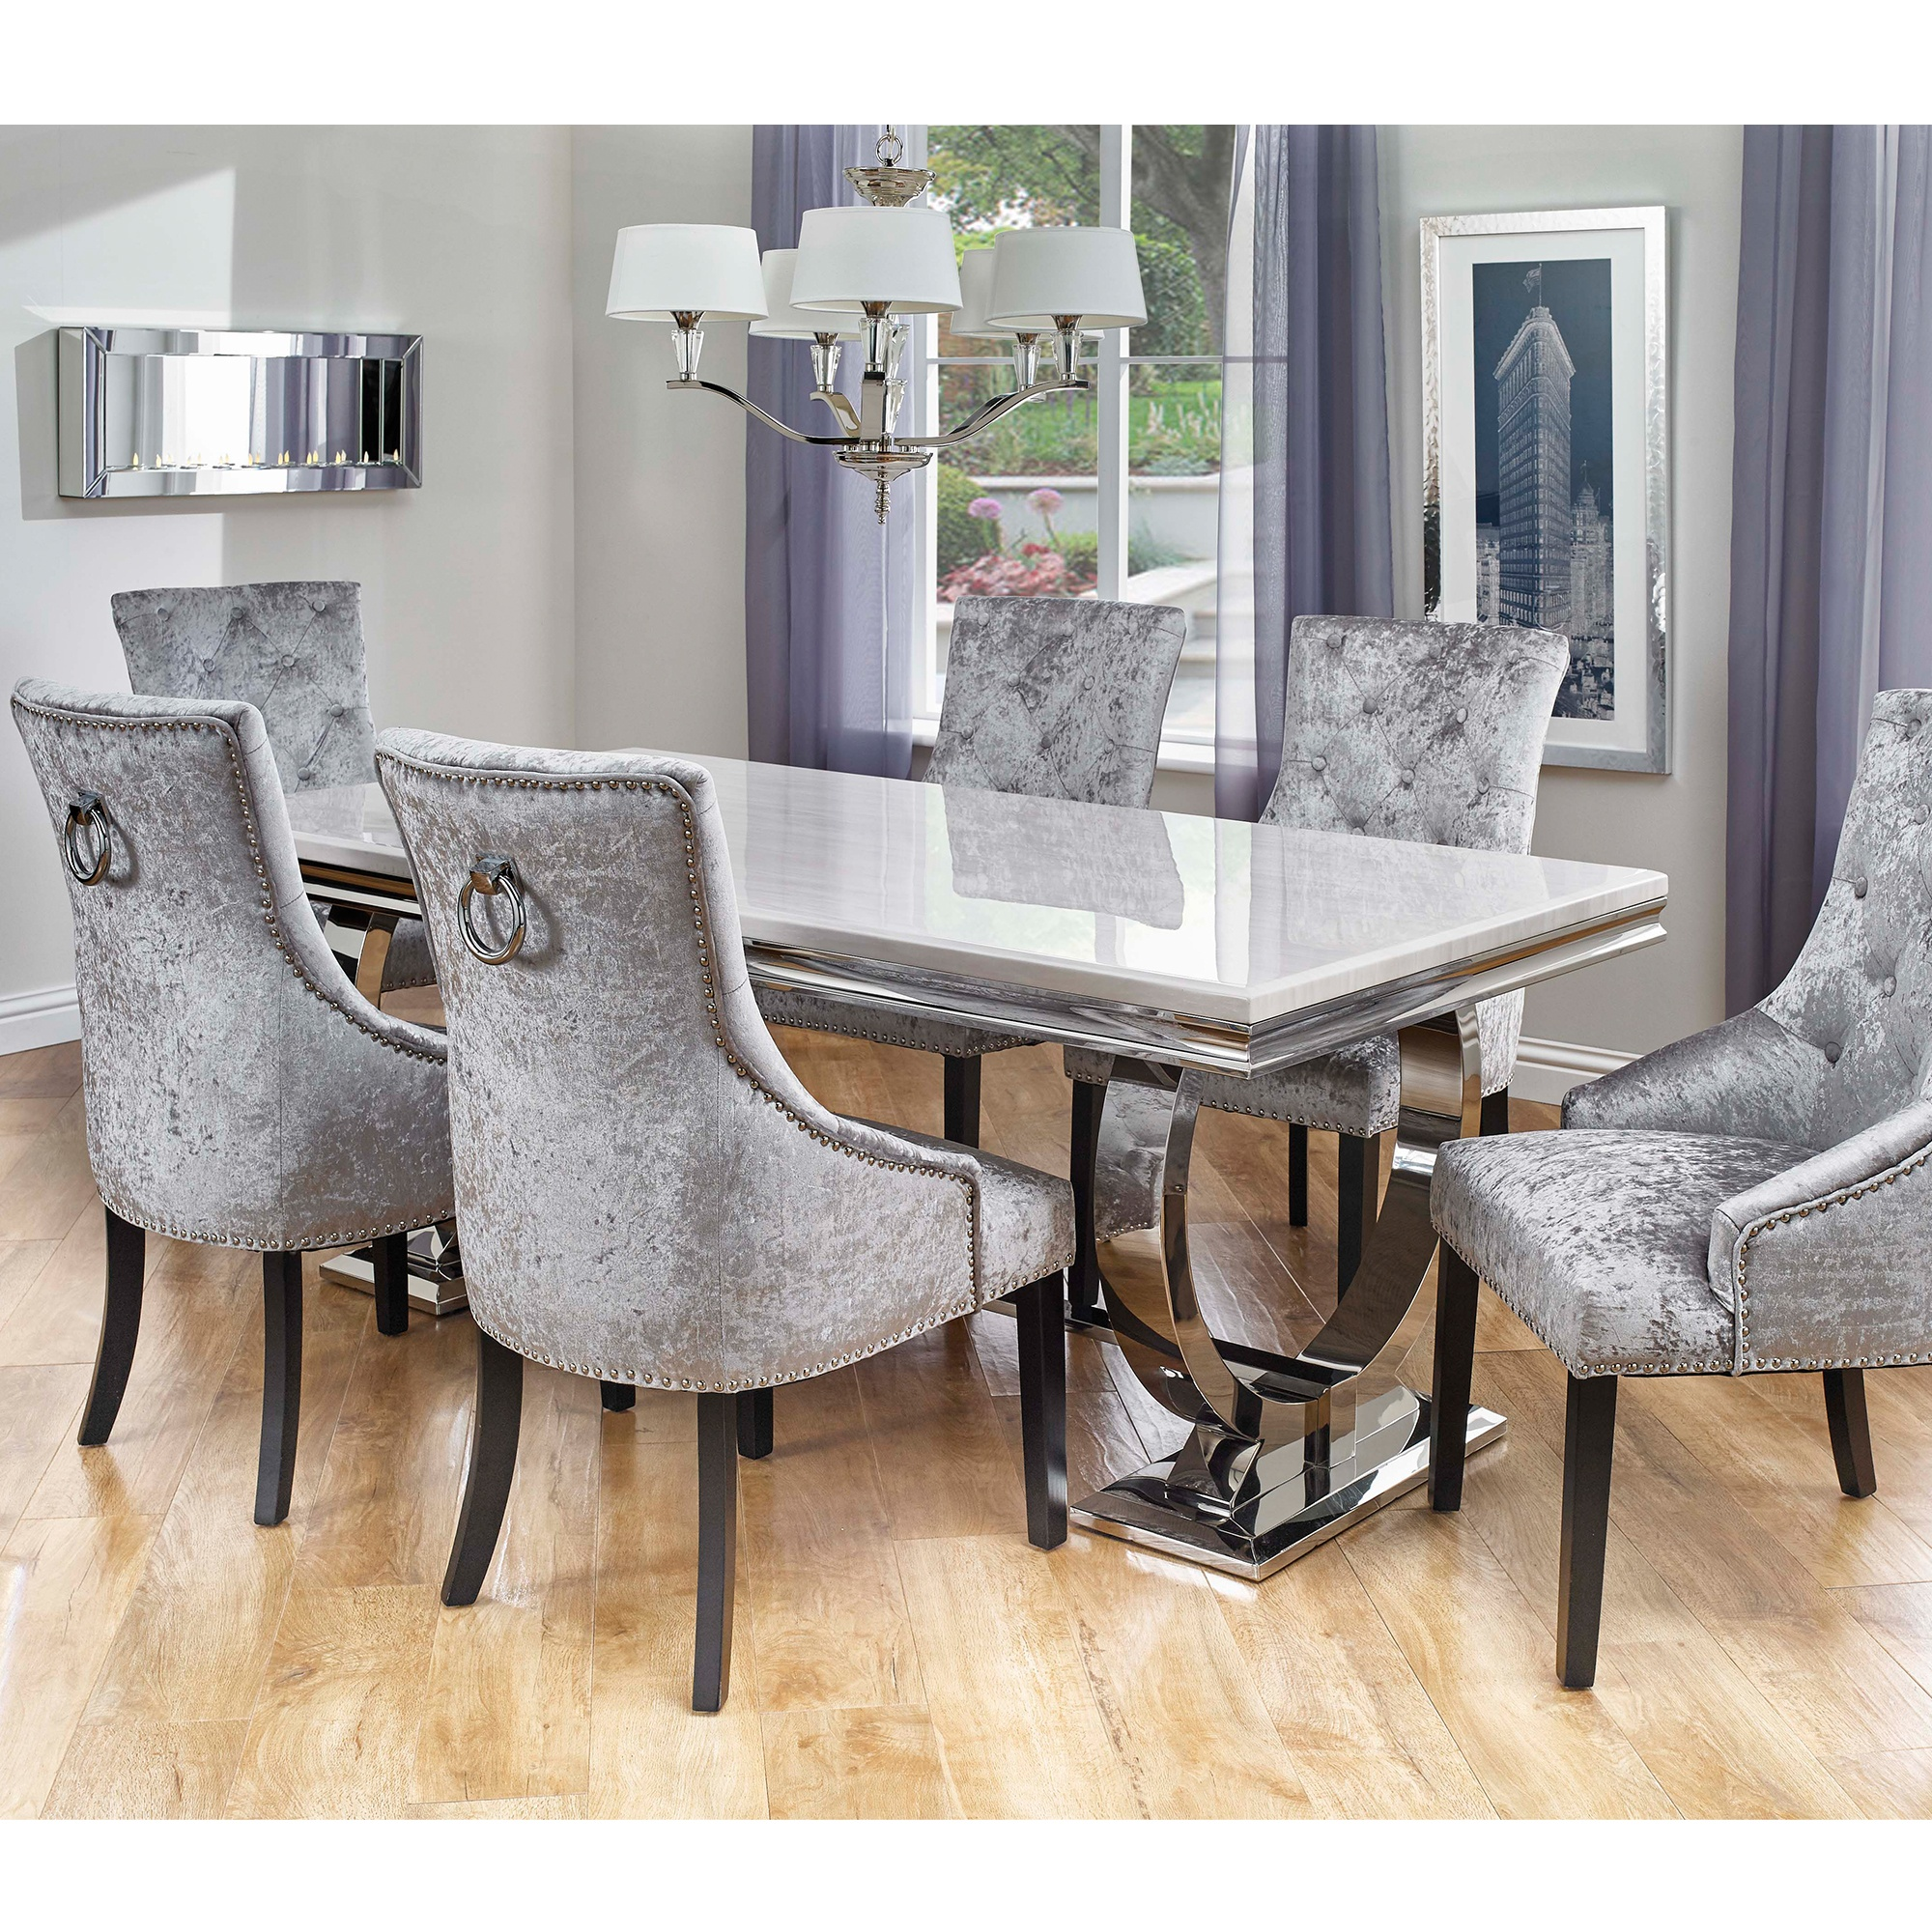 Dining Table With Two Chairs: Cookes Collection Valentina Dining Table And 6 Chairs